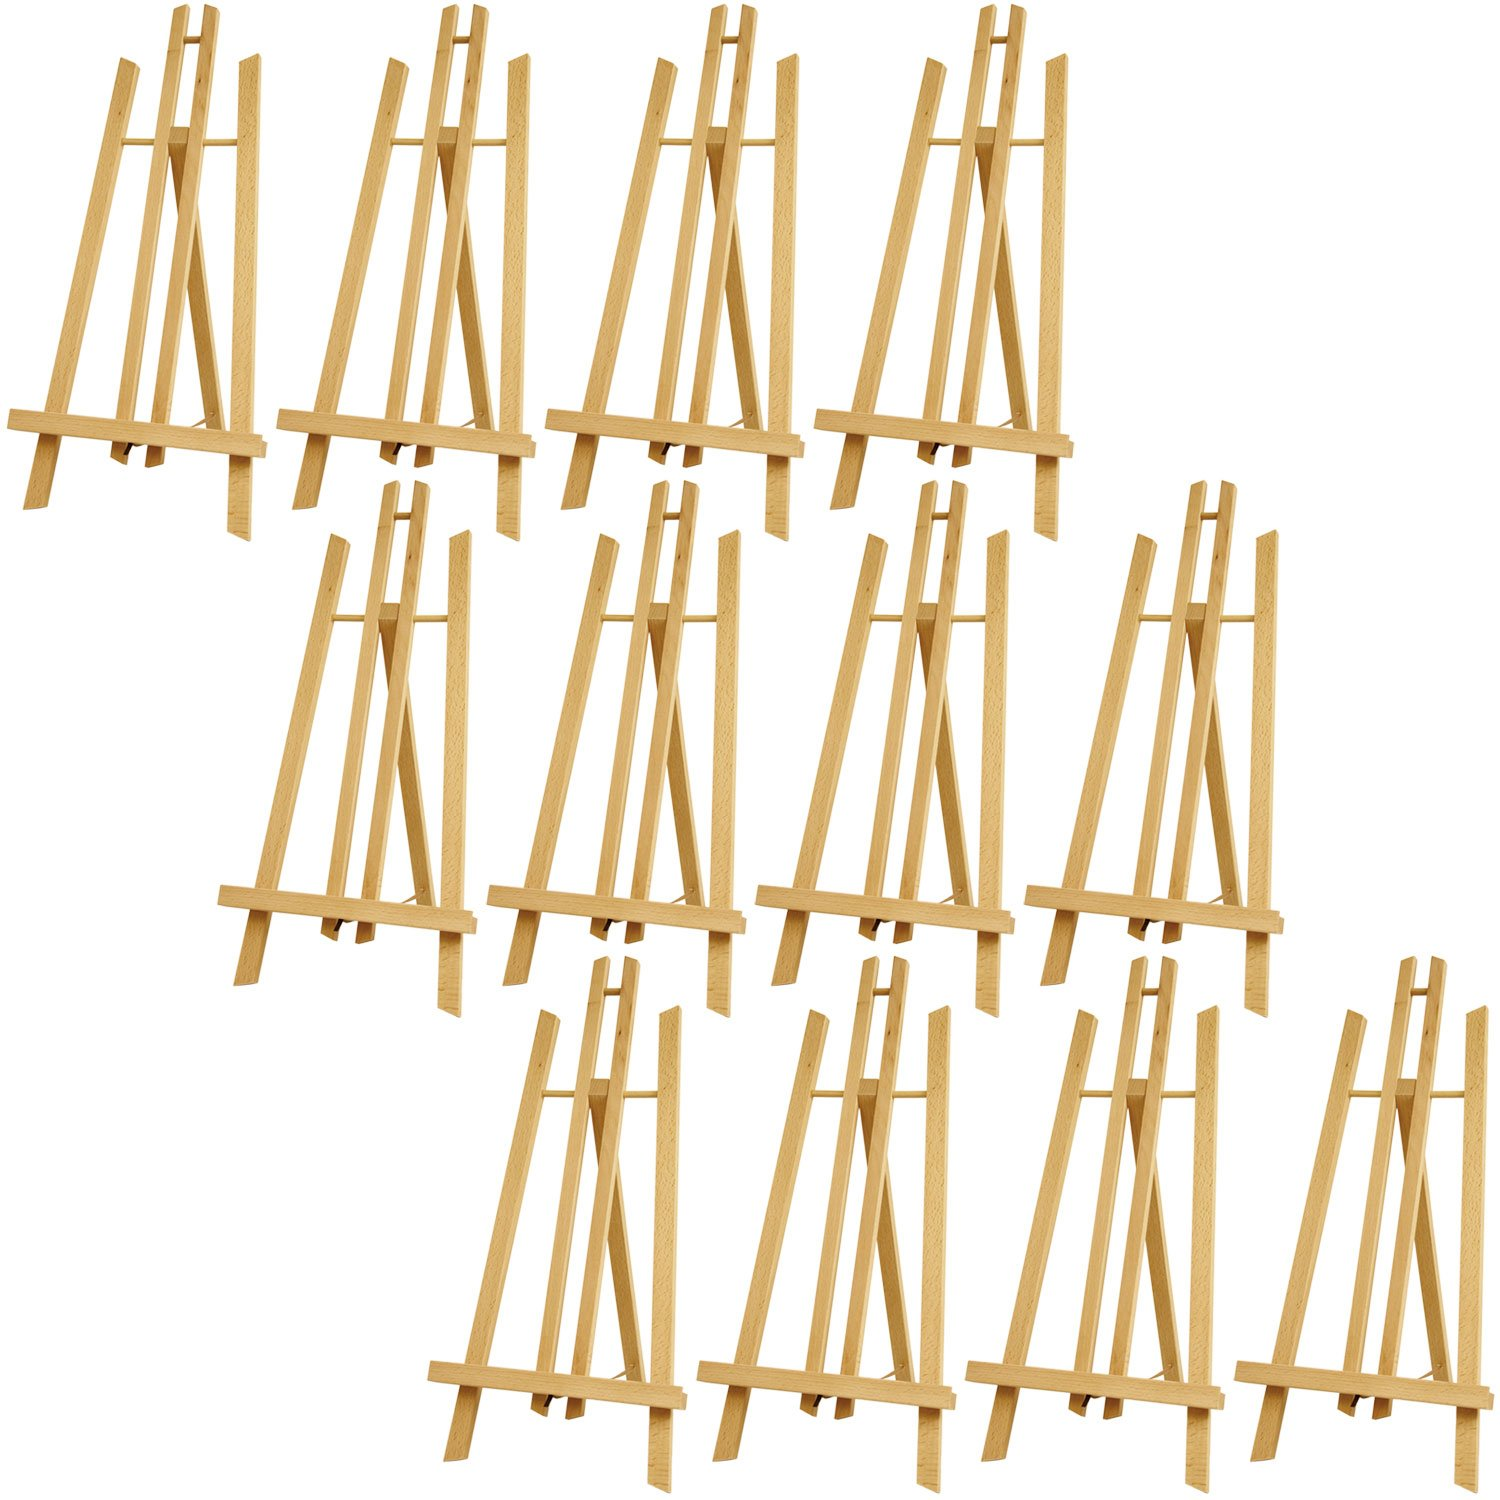 US Art Supply 18'' Large Tabletop Display A-Frame Artist Easel (12-Pack) by US Art Supply